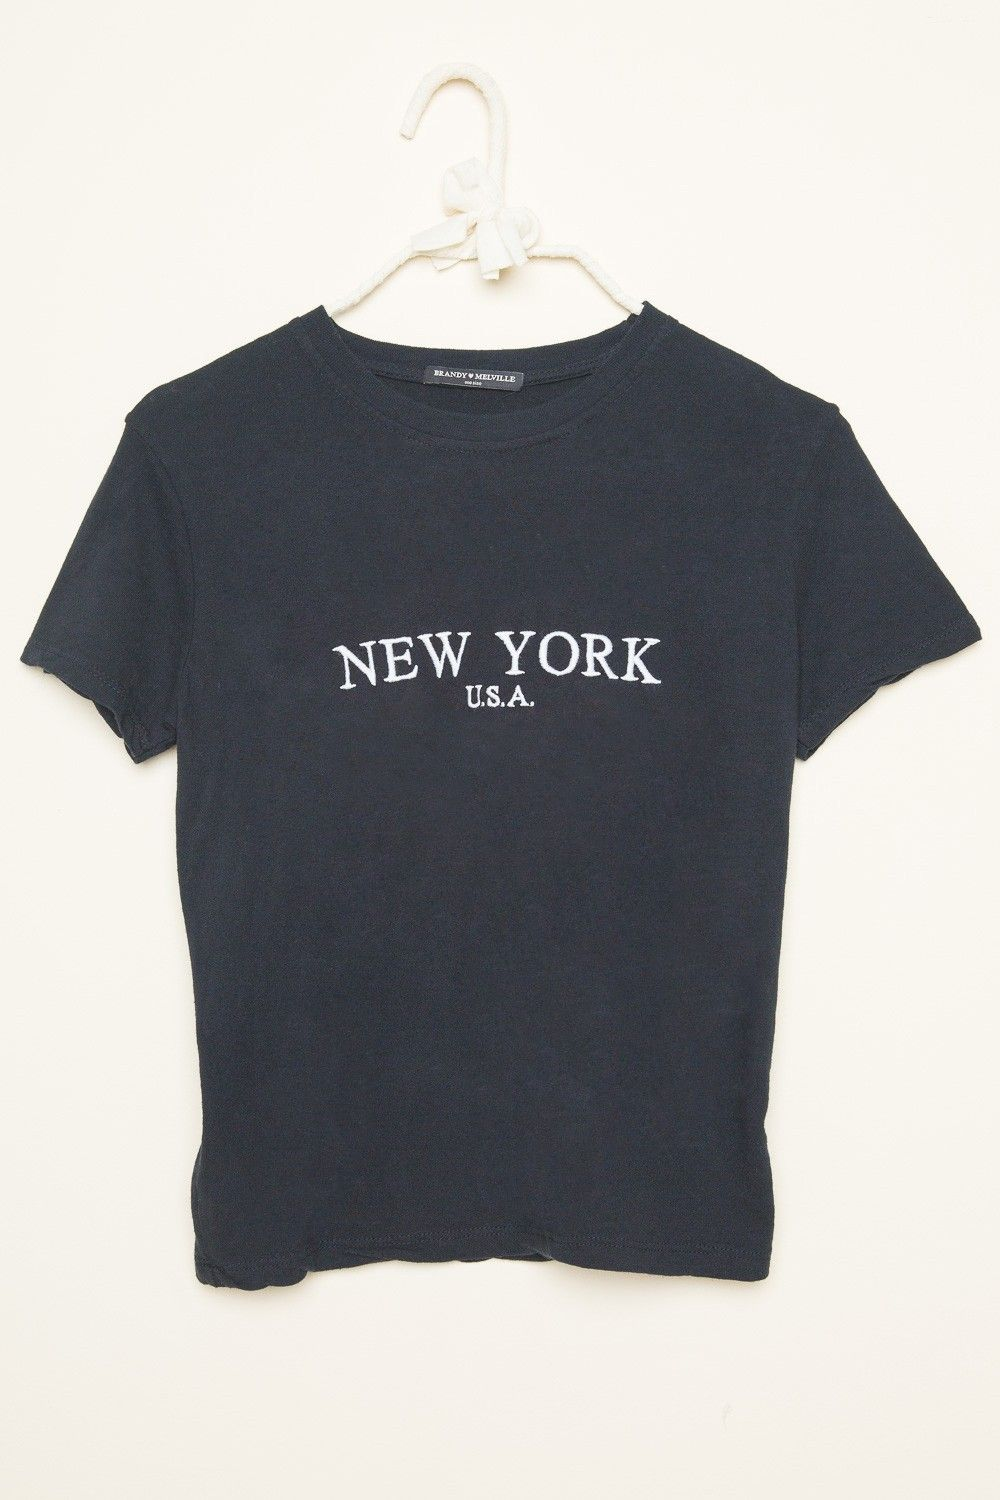 51352e77 Jamie New York USA Embroidery Top - Brandy Melville | Clothes in ...